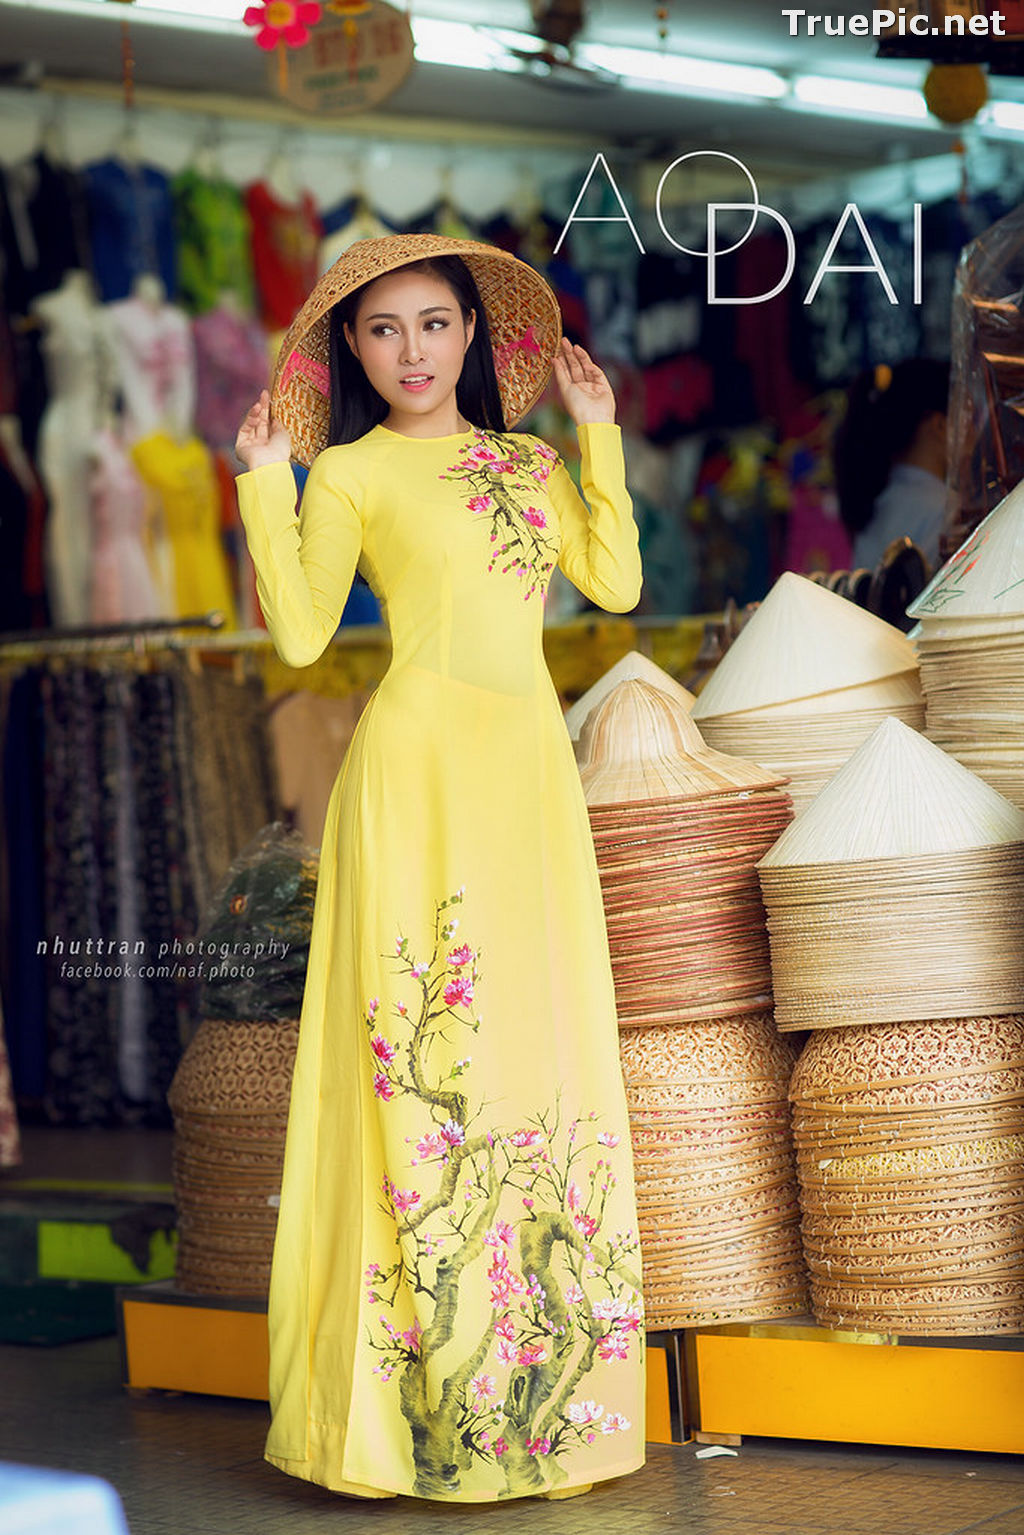 Image The Beauty of Vietnamese Girls with Traditional Dress (Ao Dai) #5 - TruePic.net - Picture-10